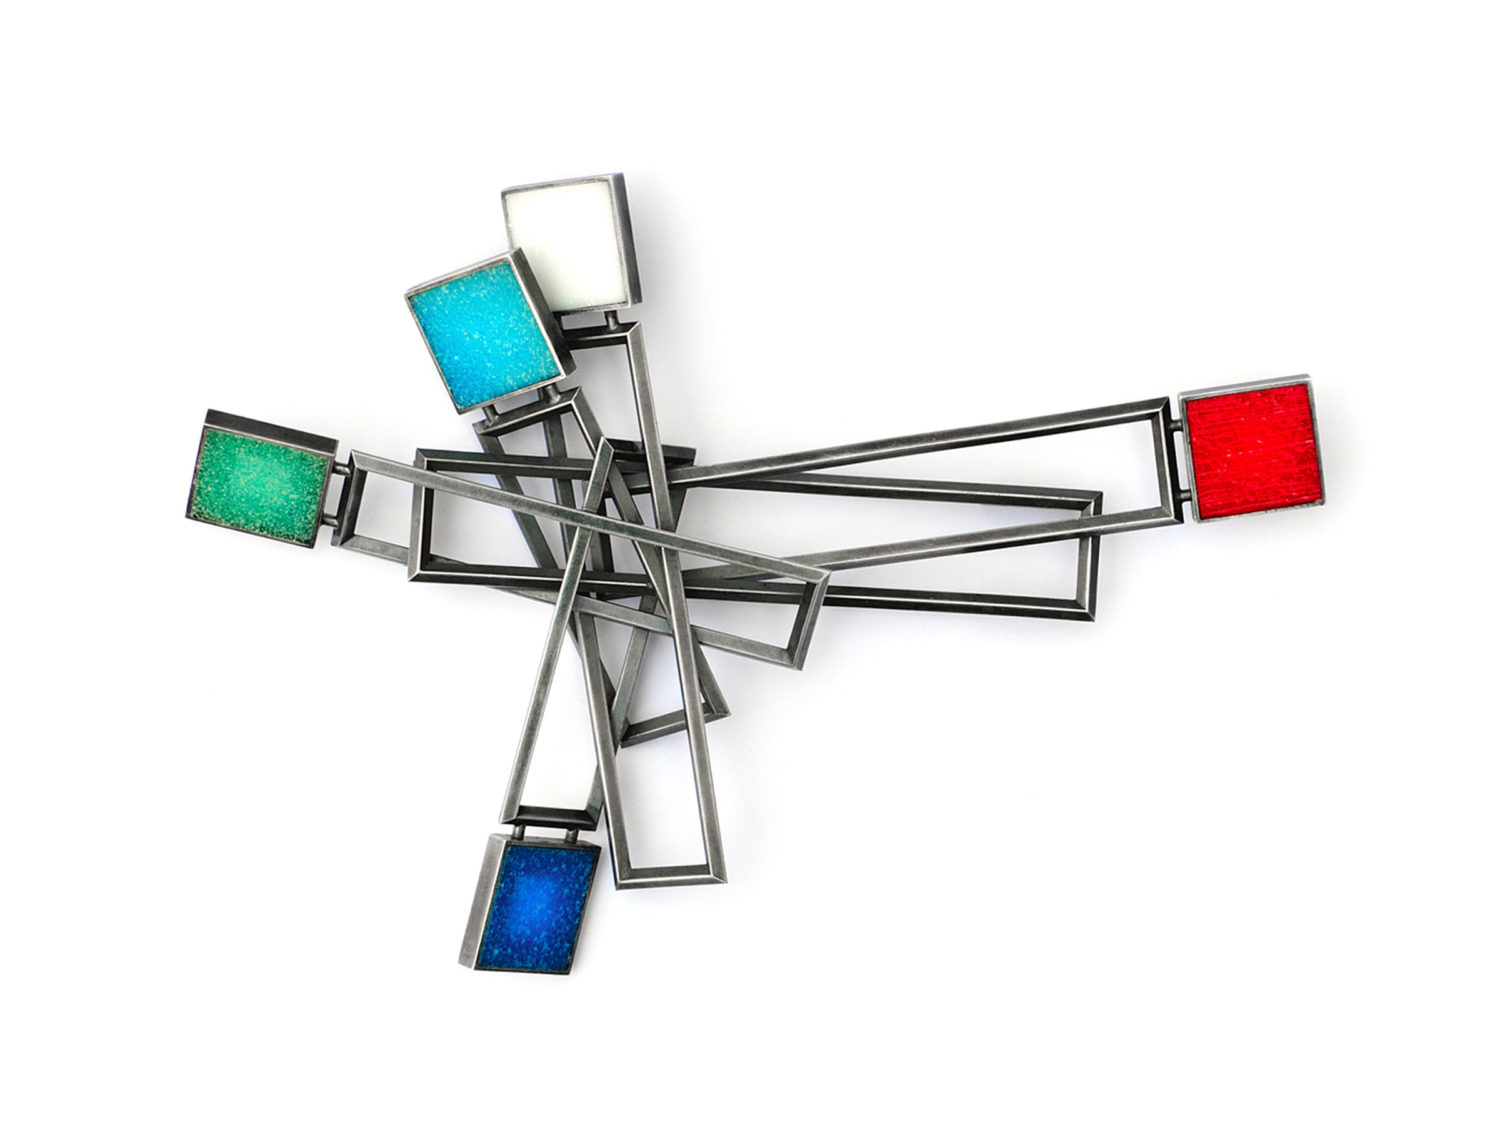 Brooch, oxidized silver, glass mosaic tiles, 2008